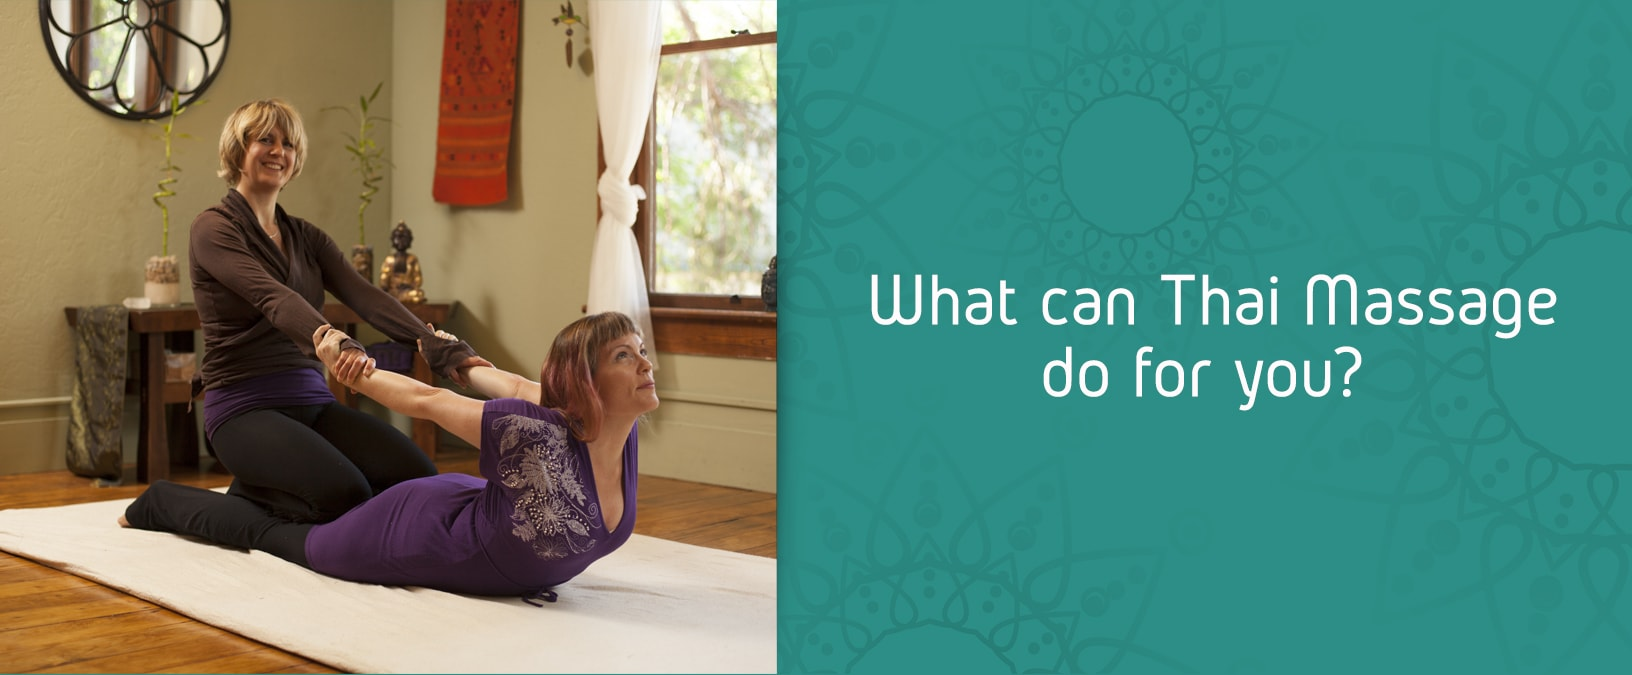 what can thai massage do for you